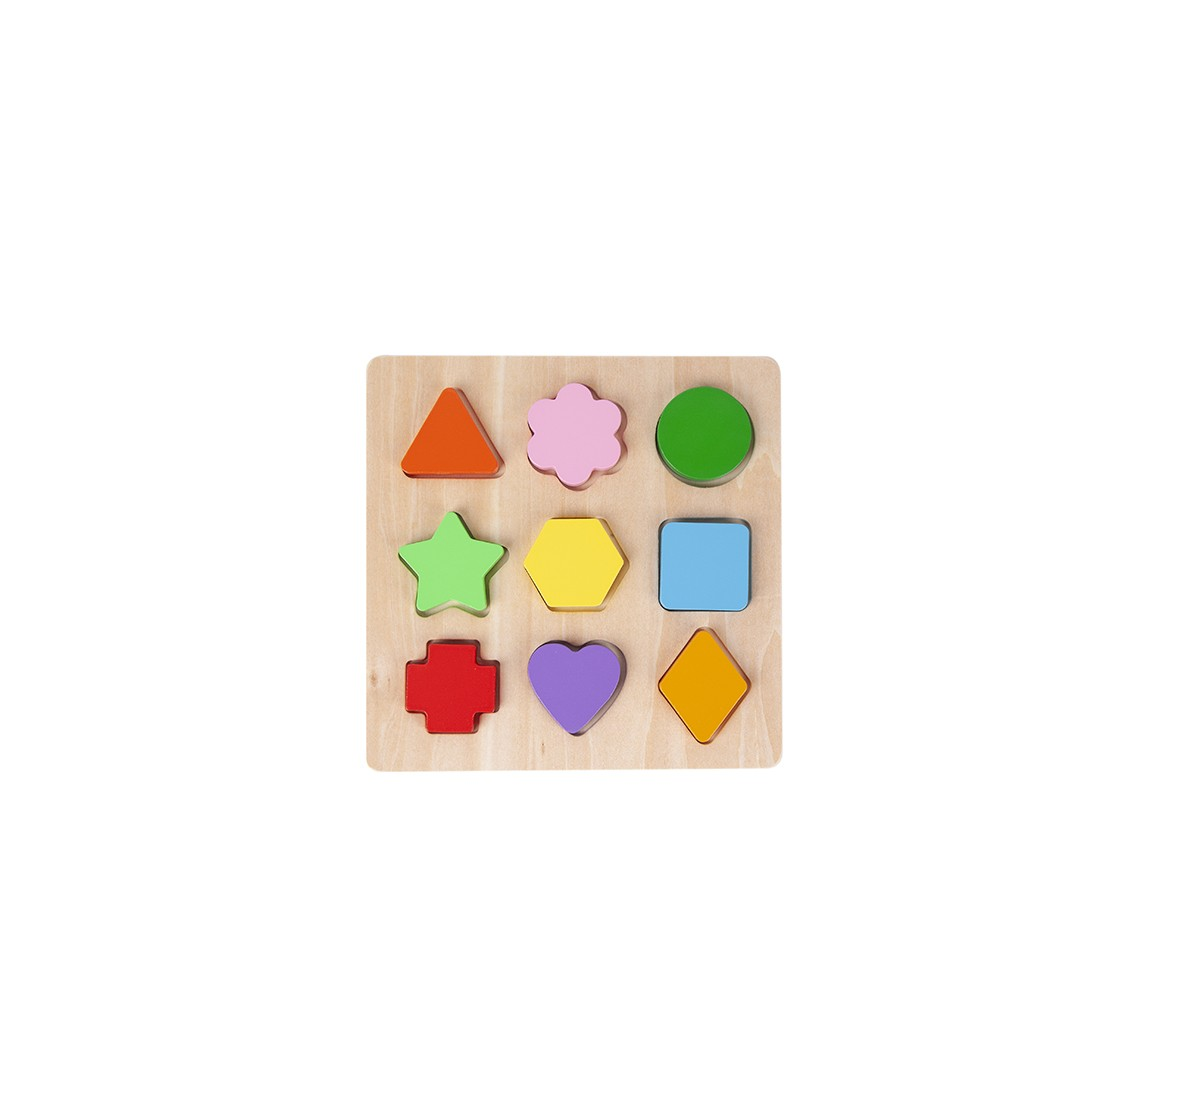 Shooting Star Wooden Geometry 9 Pc Set for Kids age 3Y+